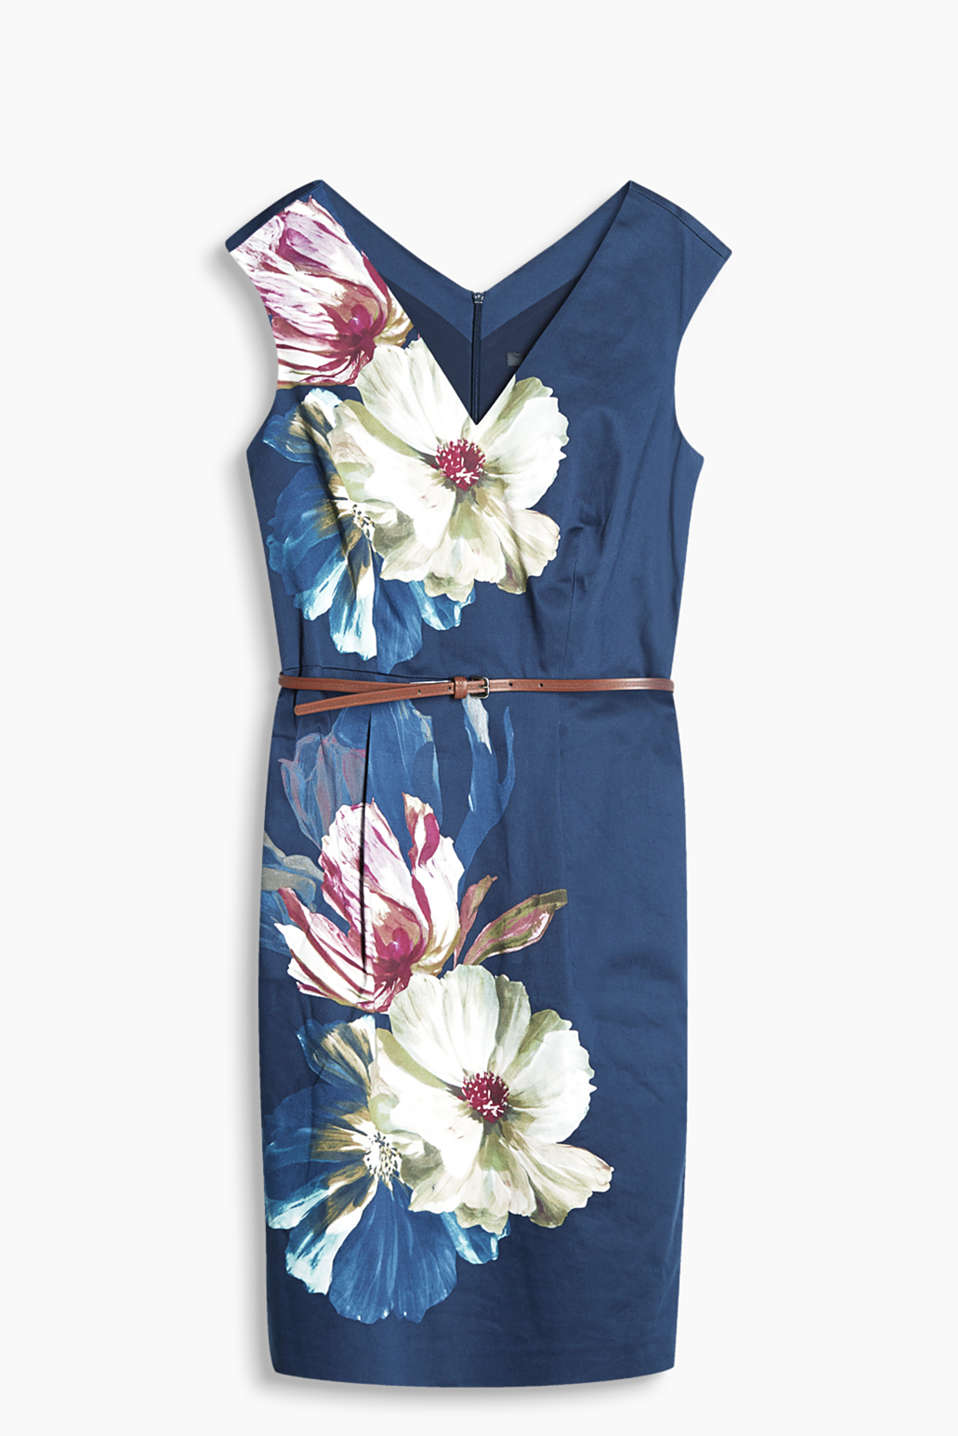 Feminine dress with positioned flower prints, cotton/stretch